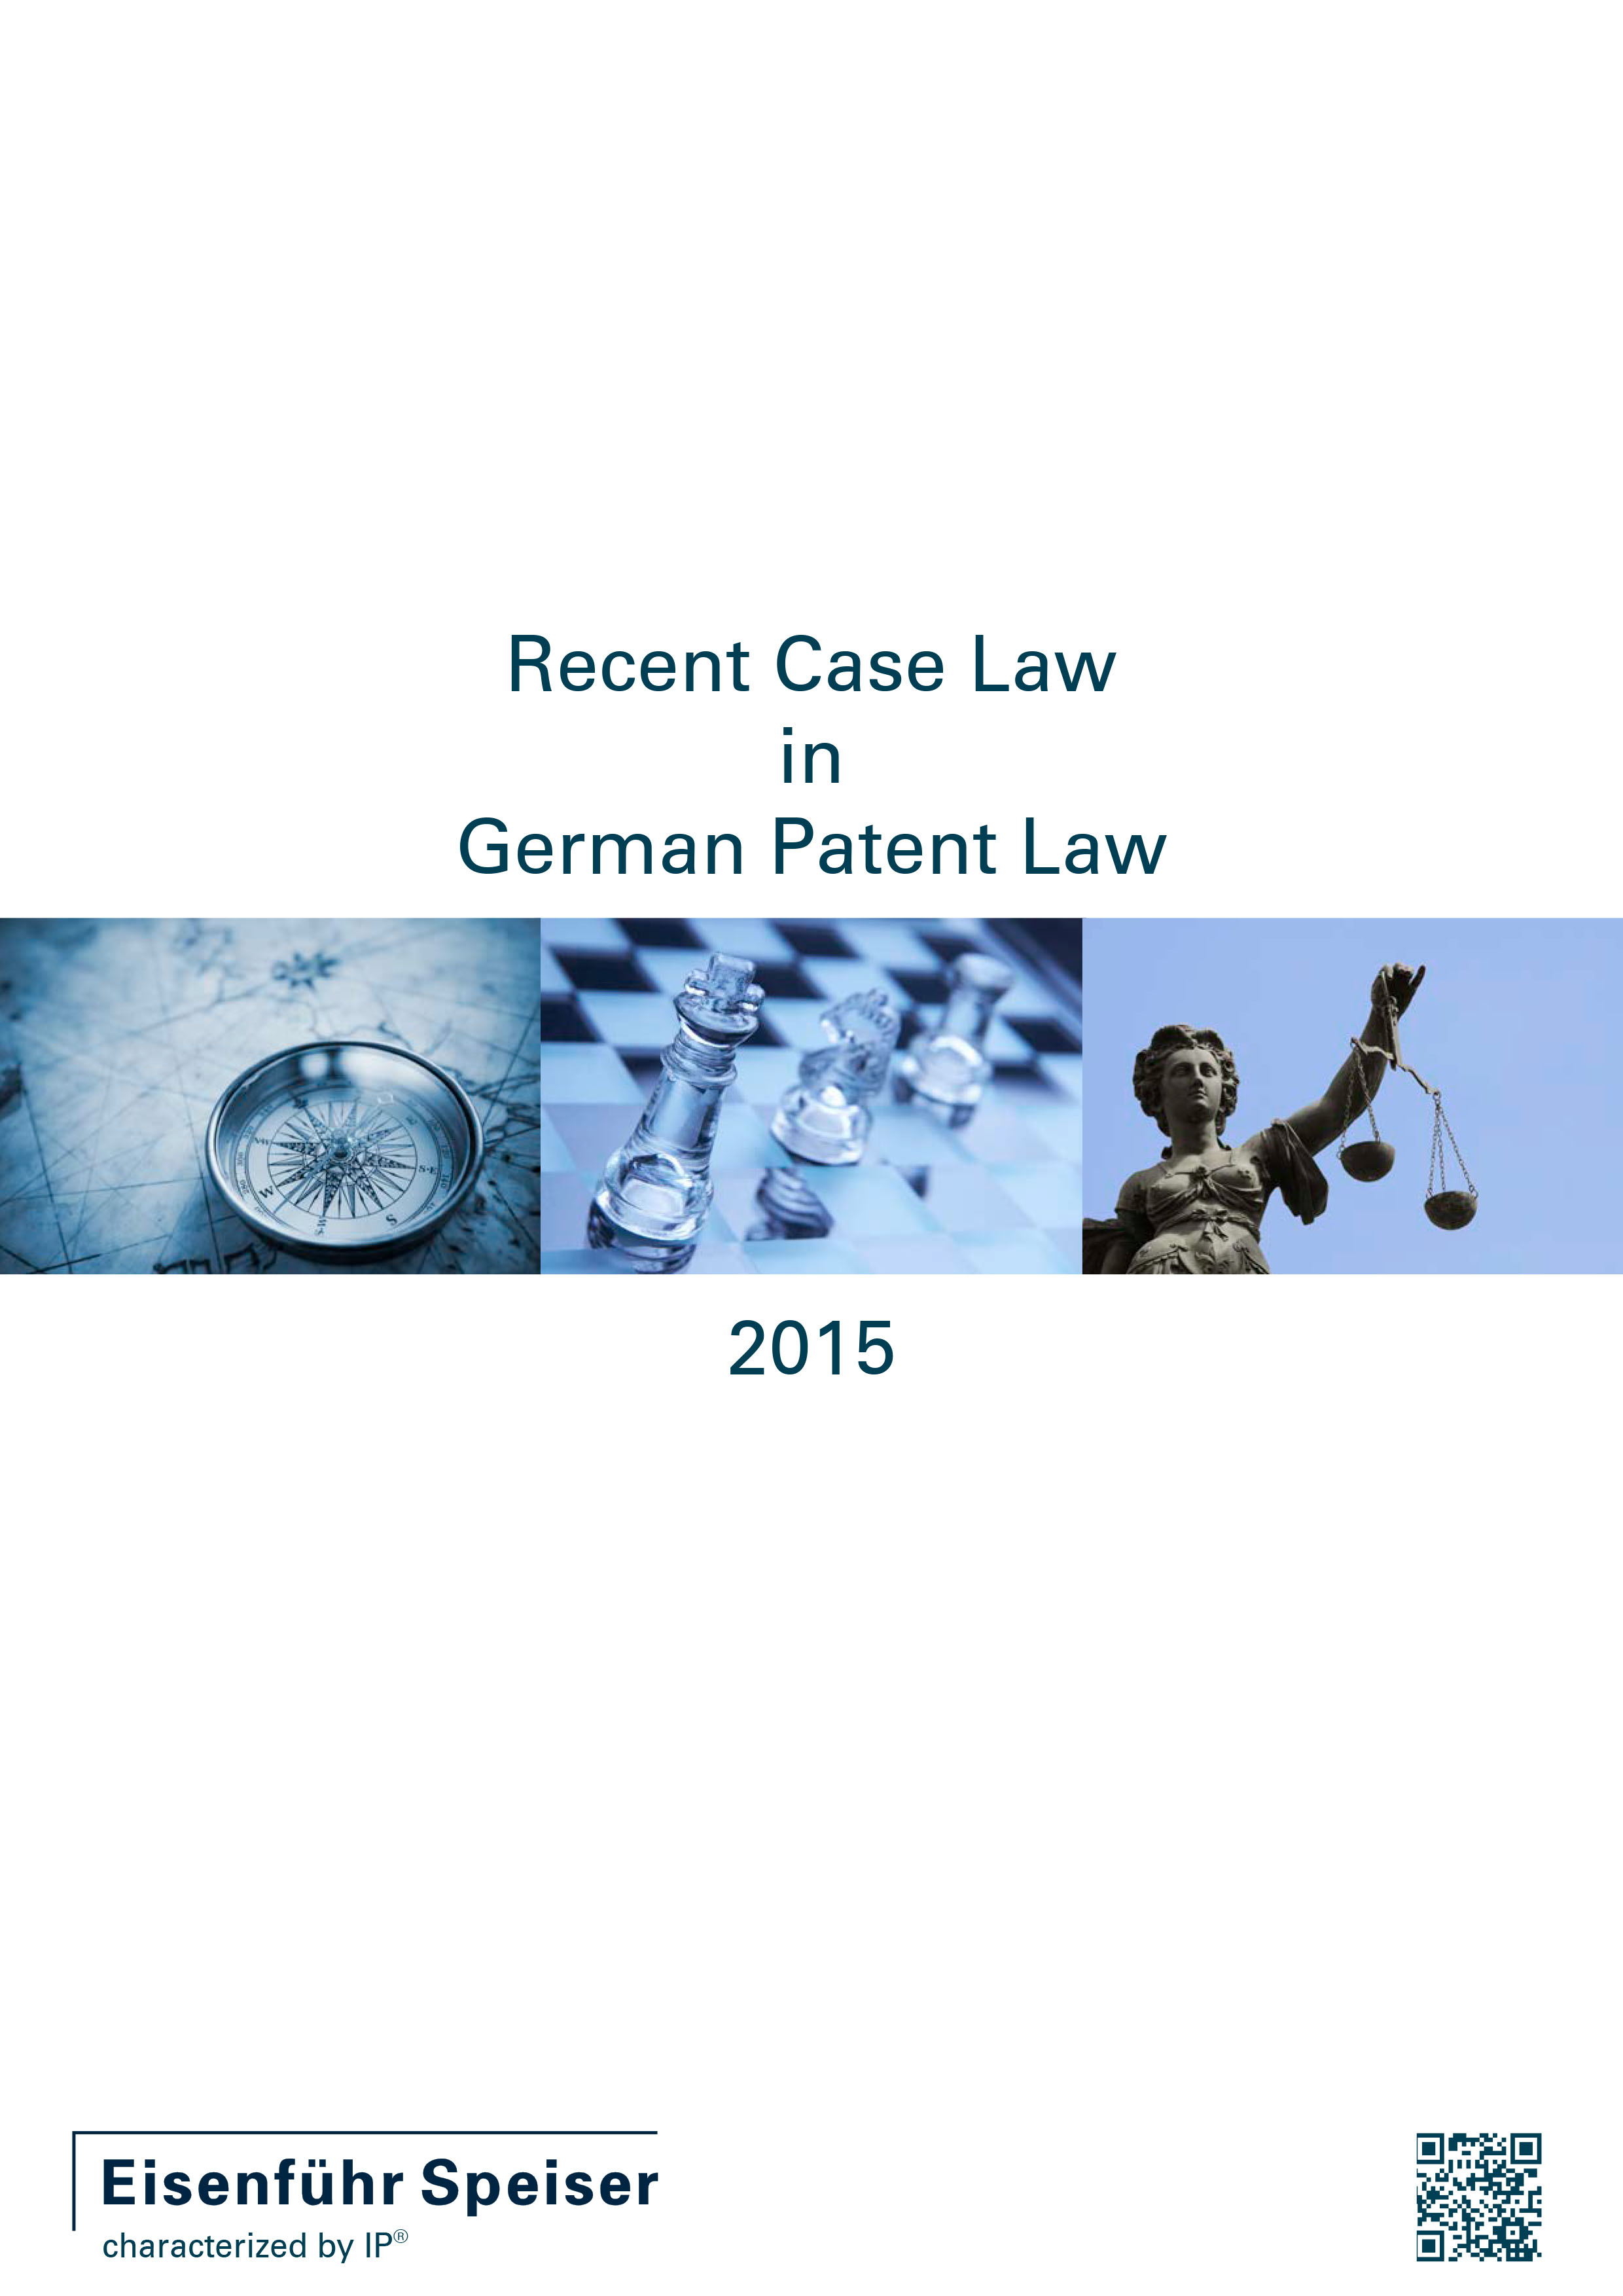 Recent Case Law in German Patent Law 2015